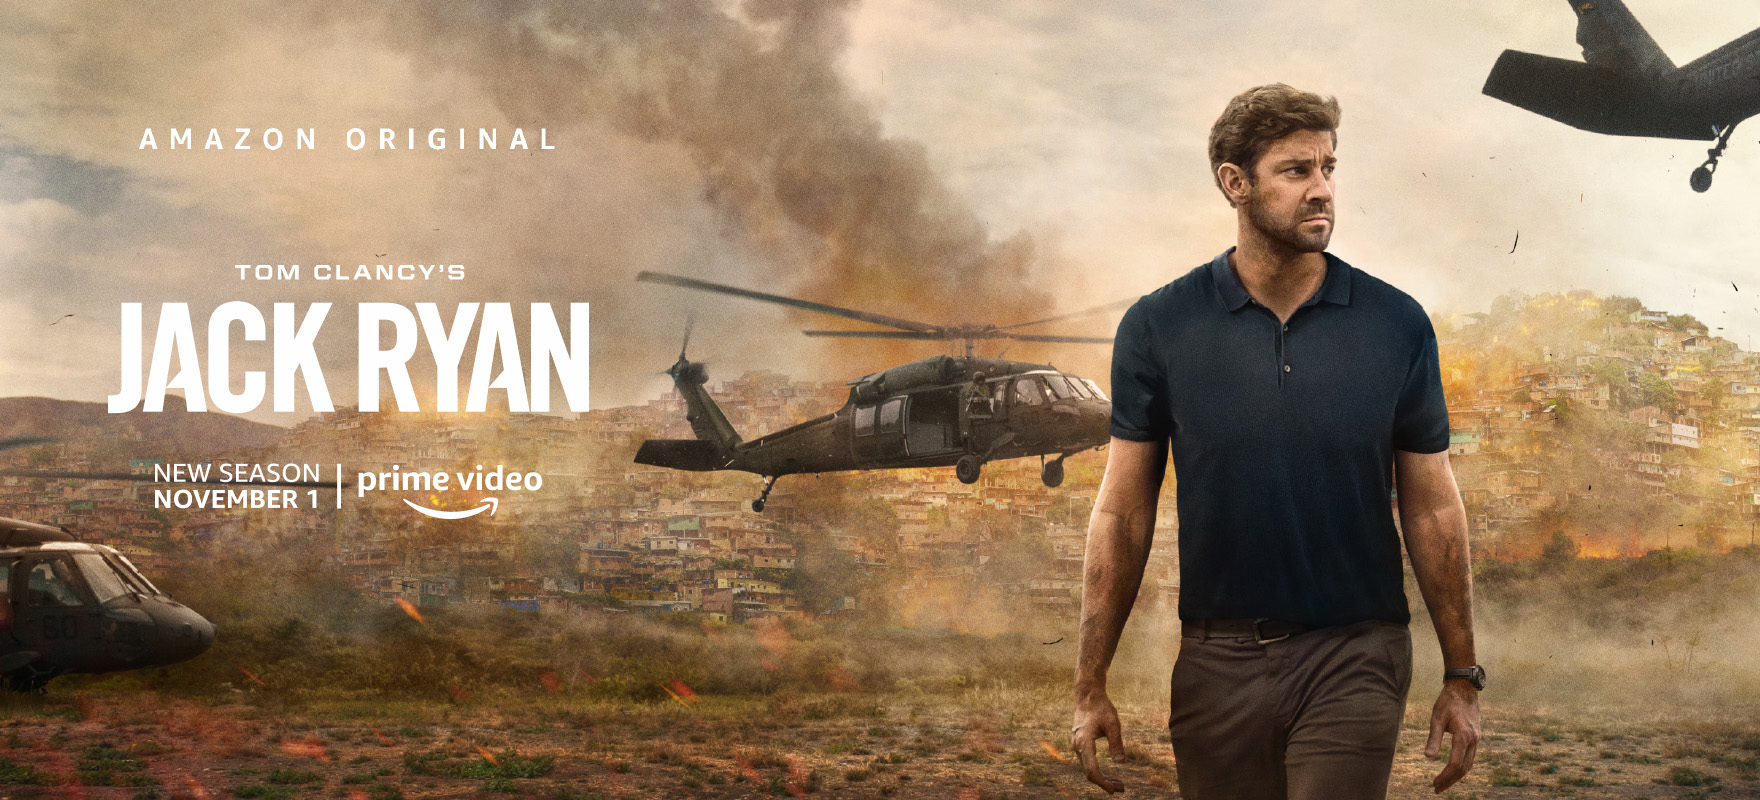 Jack Ryan Season 3 Release Date Delay due to COVID-19